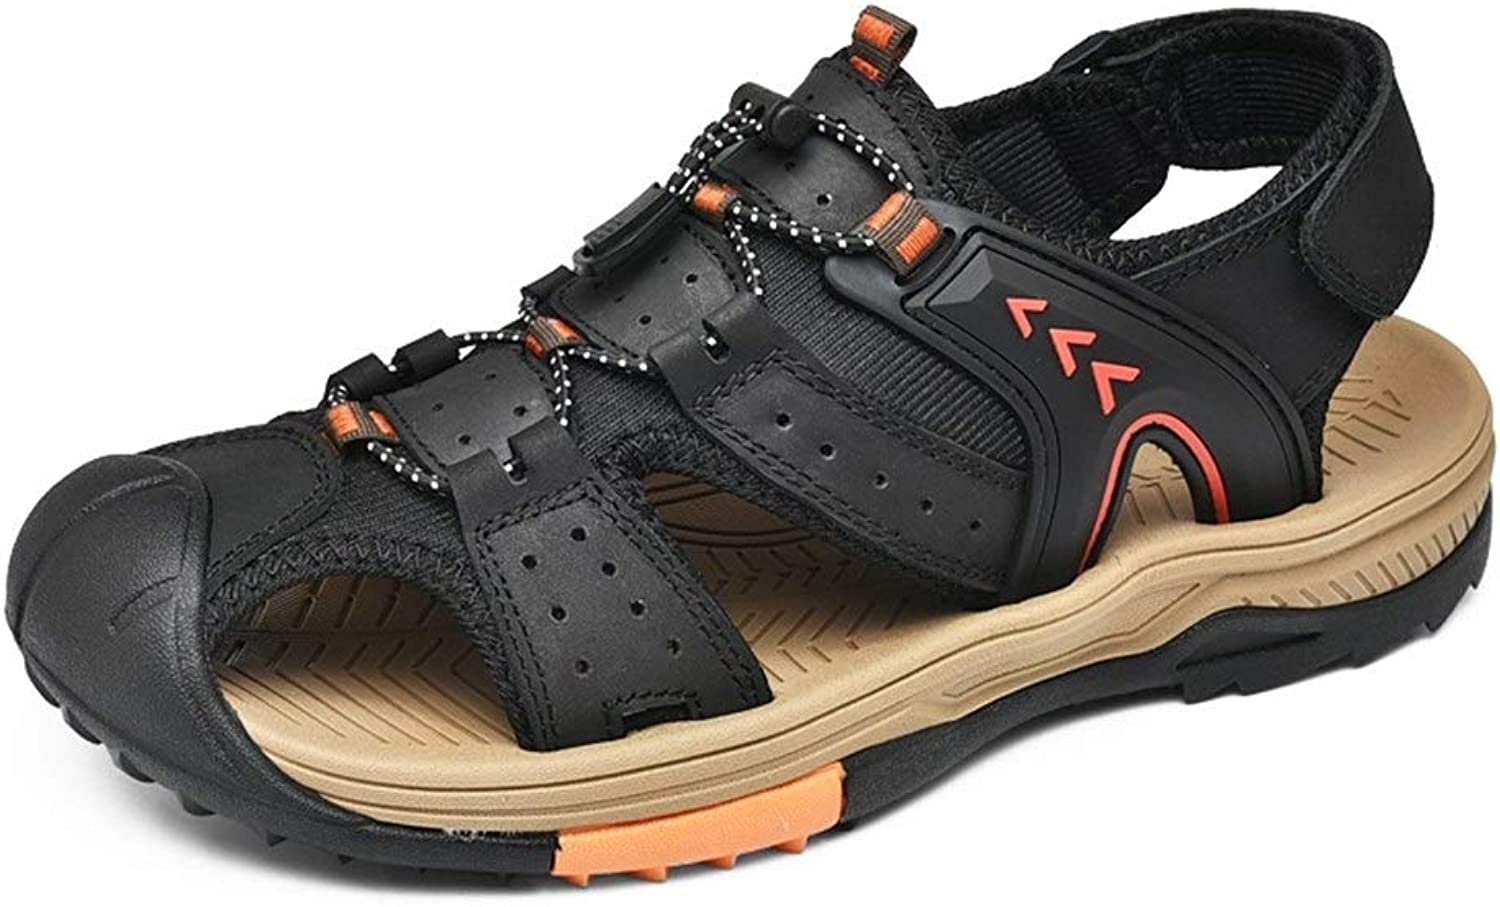 ANNFENG Fashion Tropical Summer Beach Outdoor Casual Lightweight Waterproof Sandals For Men Comfort Leisure Water shoes Slip On Style OX Leather Hook&Loop Strap Hollow Flexible Elastic Decor